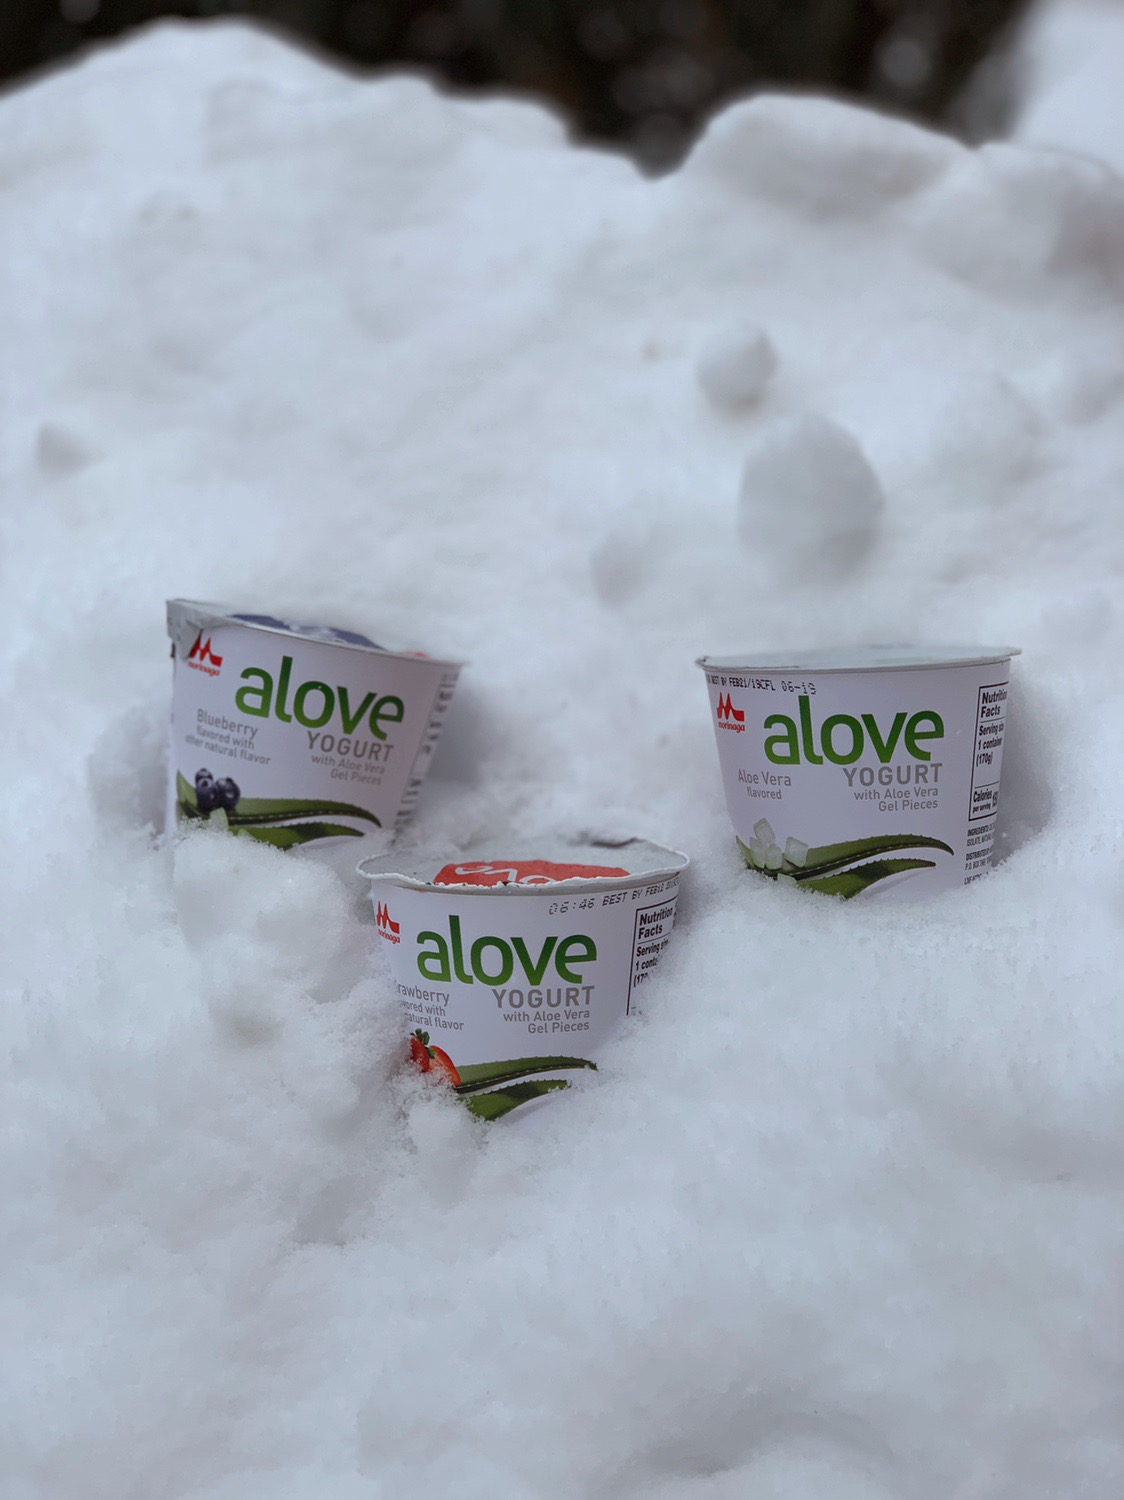 Alove in the midst of the Washington State snow storm